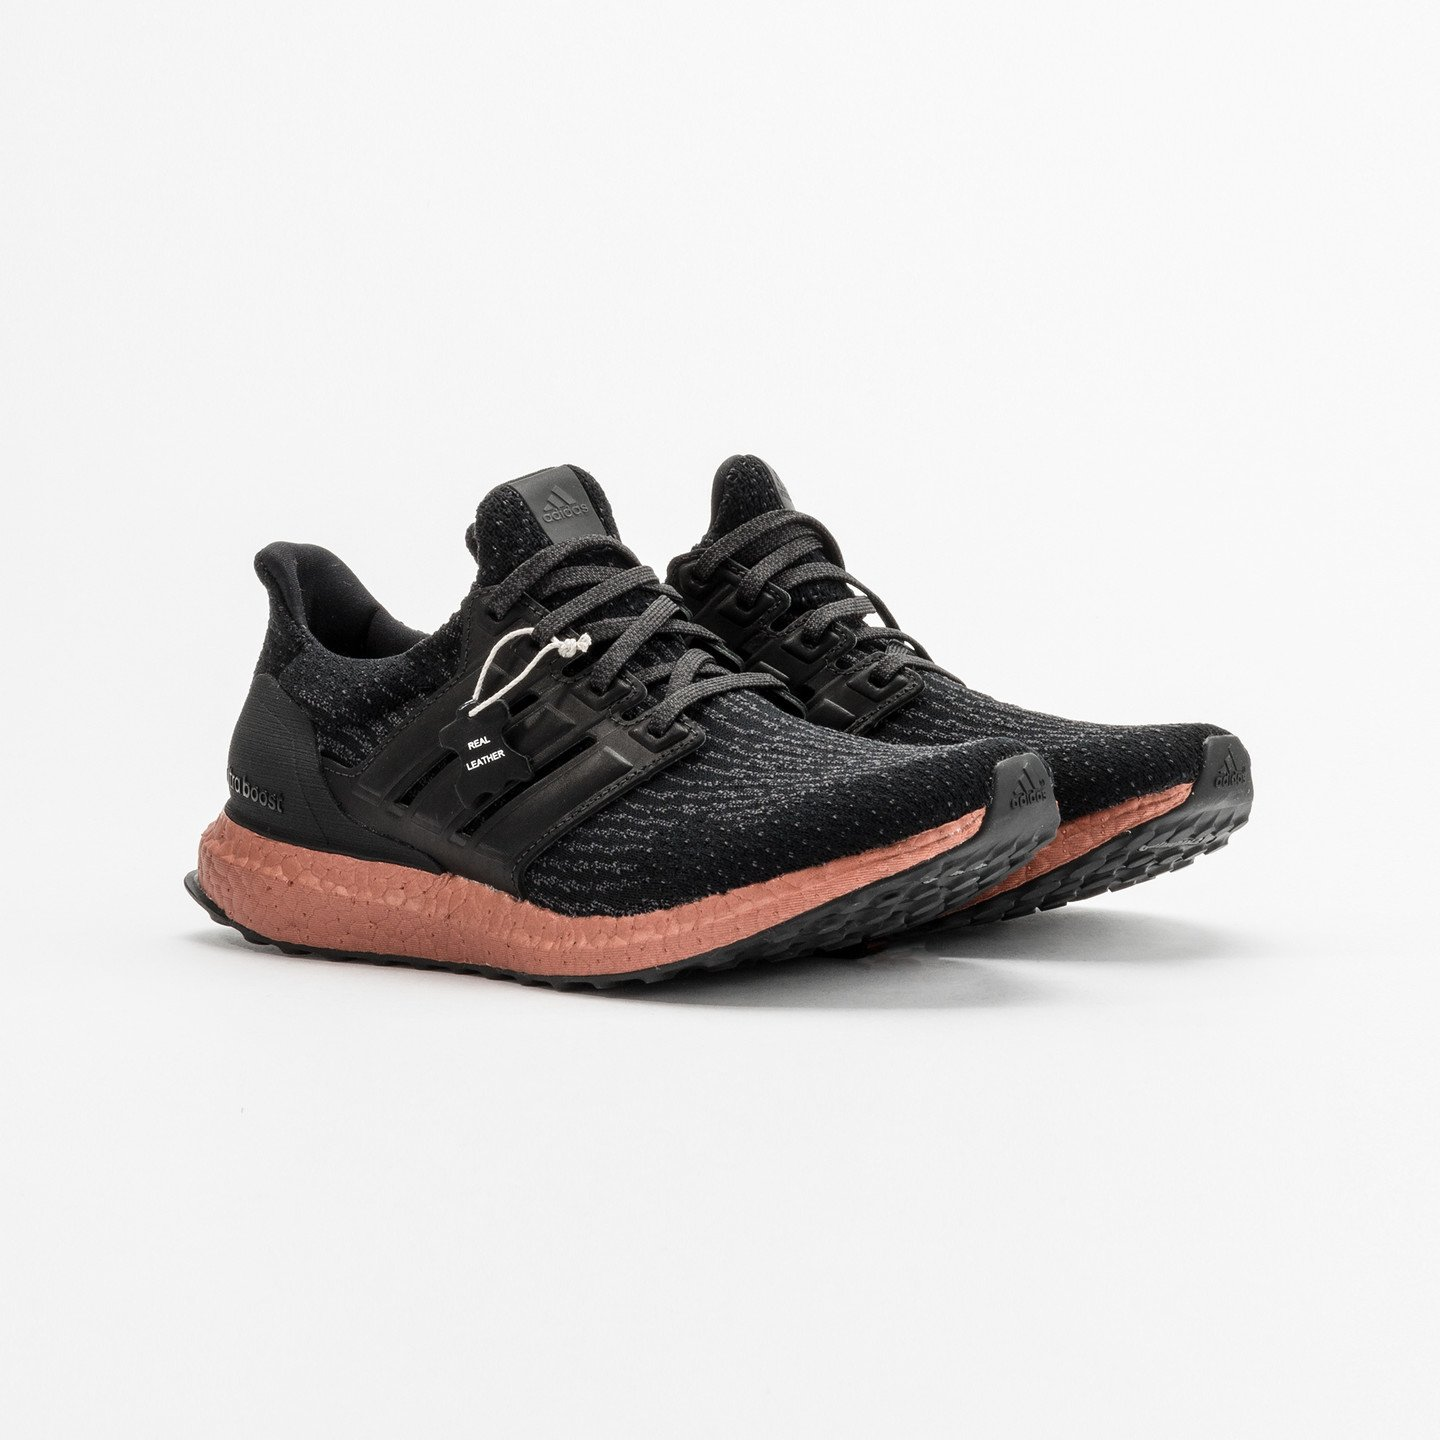 Adidas Ultra Boost 3.0 'Tech Rust' Black / Tech Rust CG4086